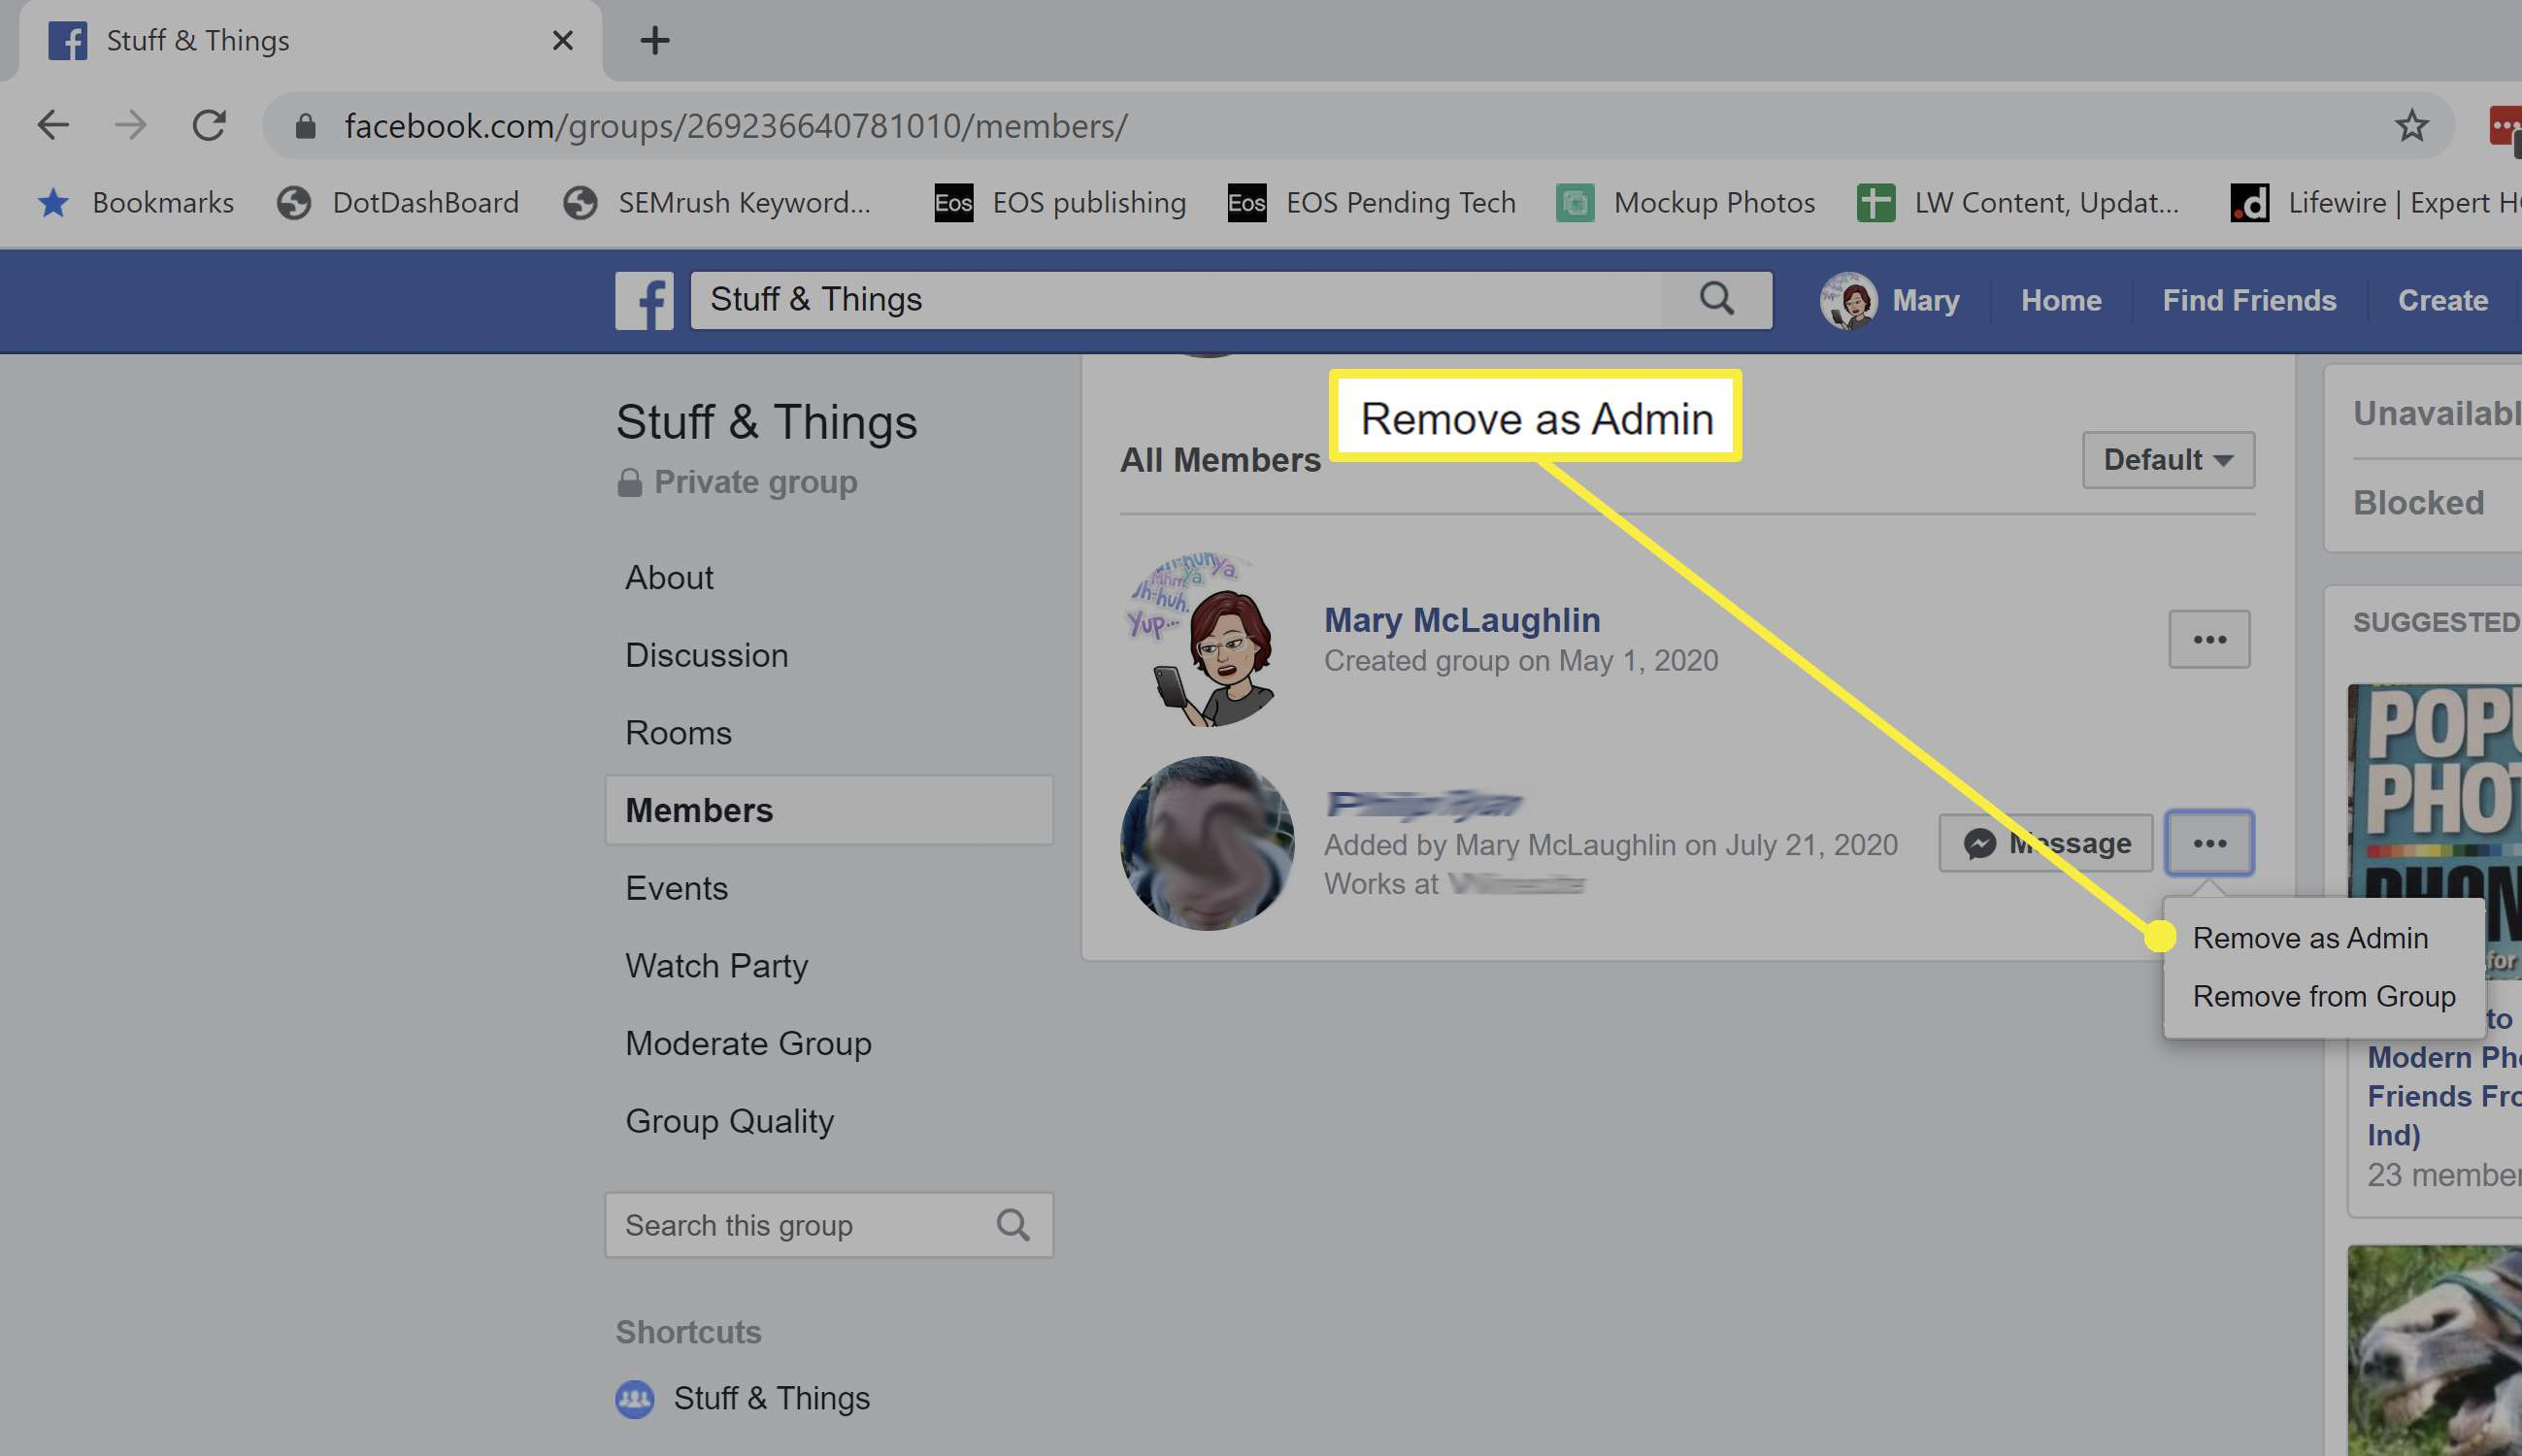 Removing someone as admin on a Facebook page.